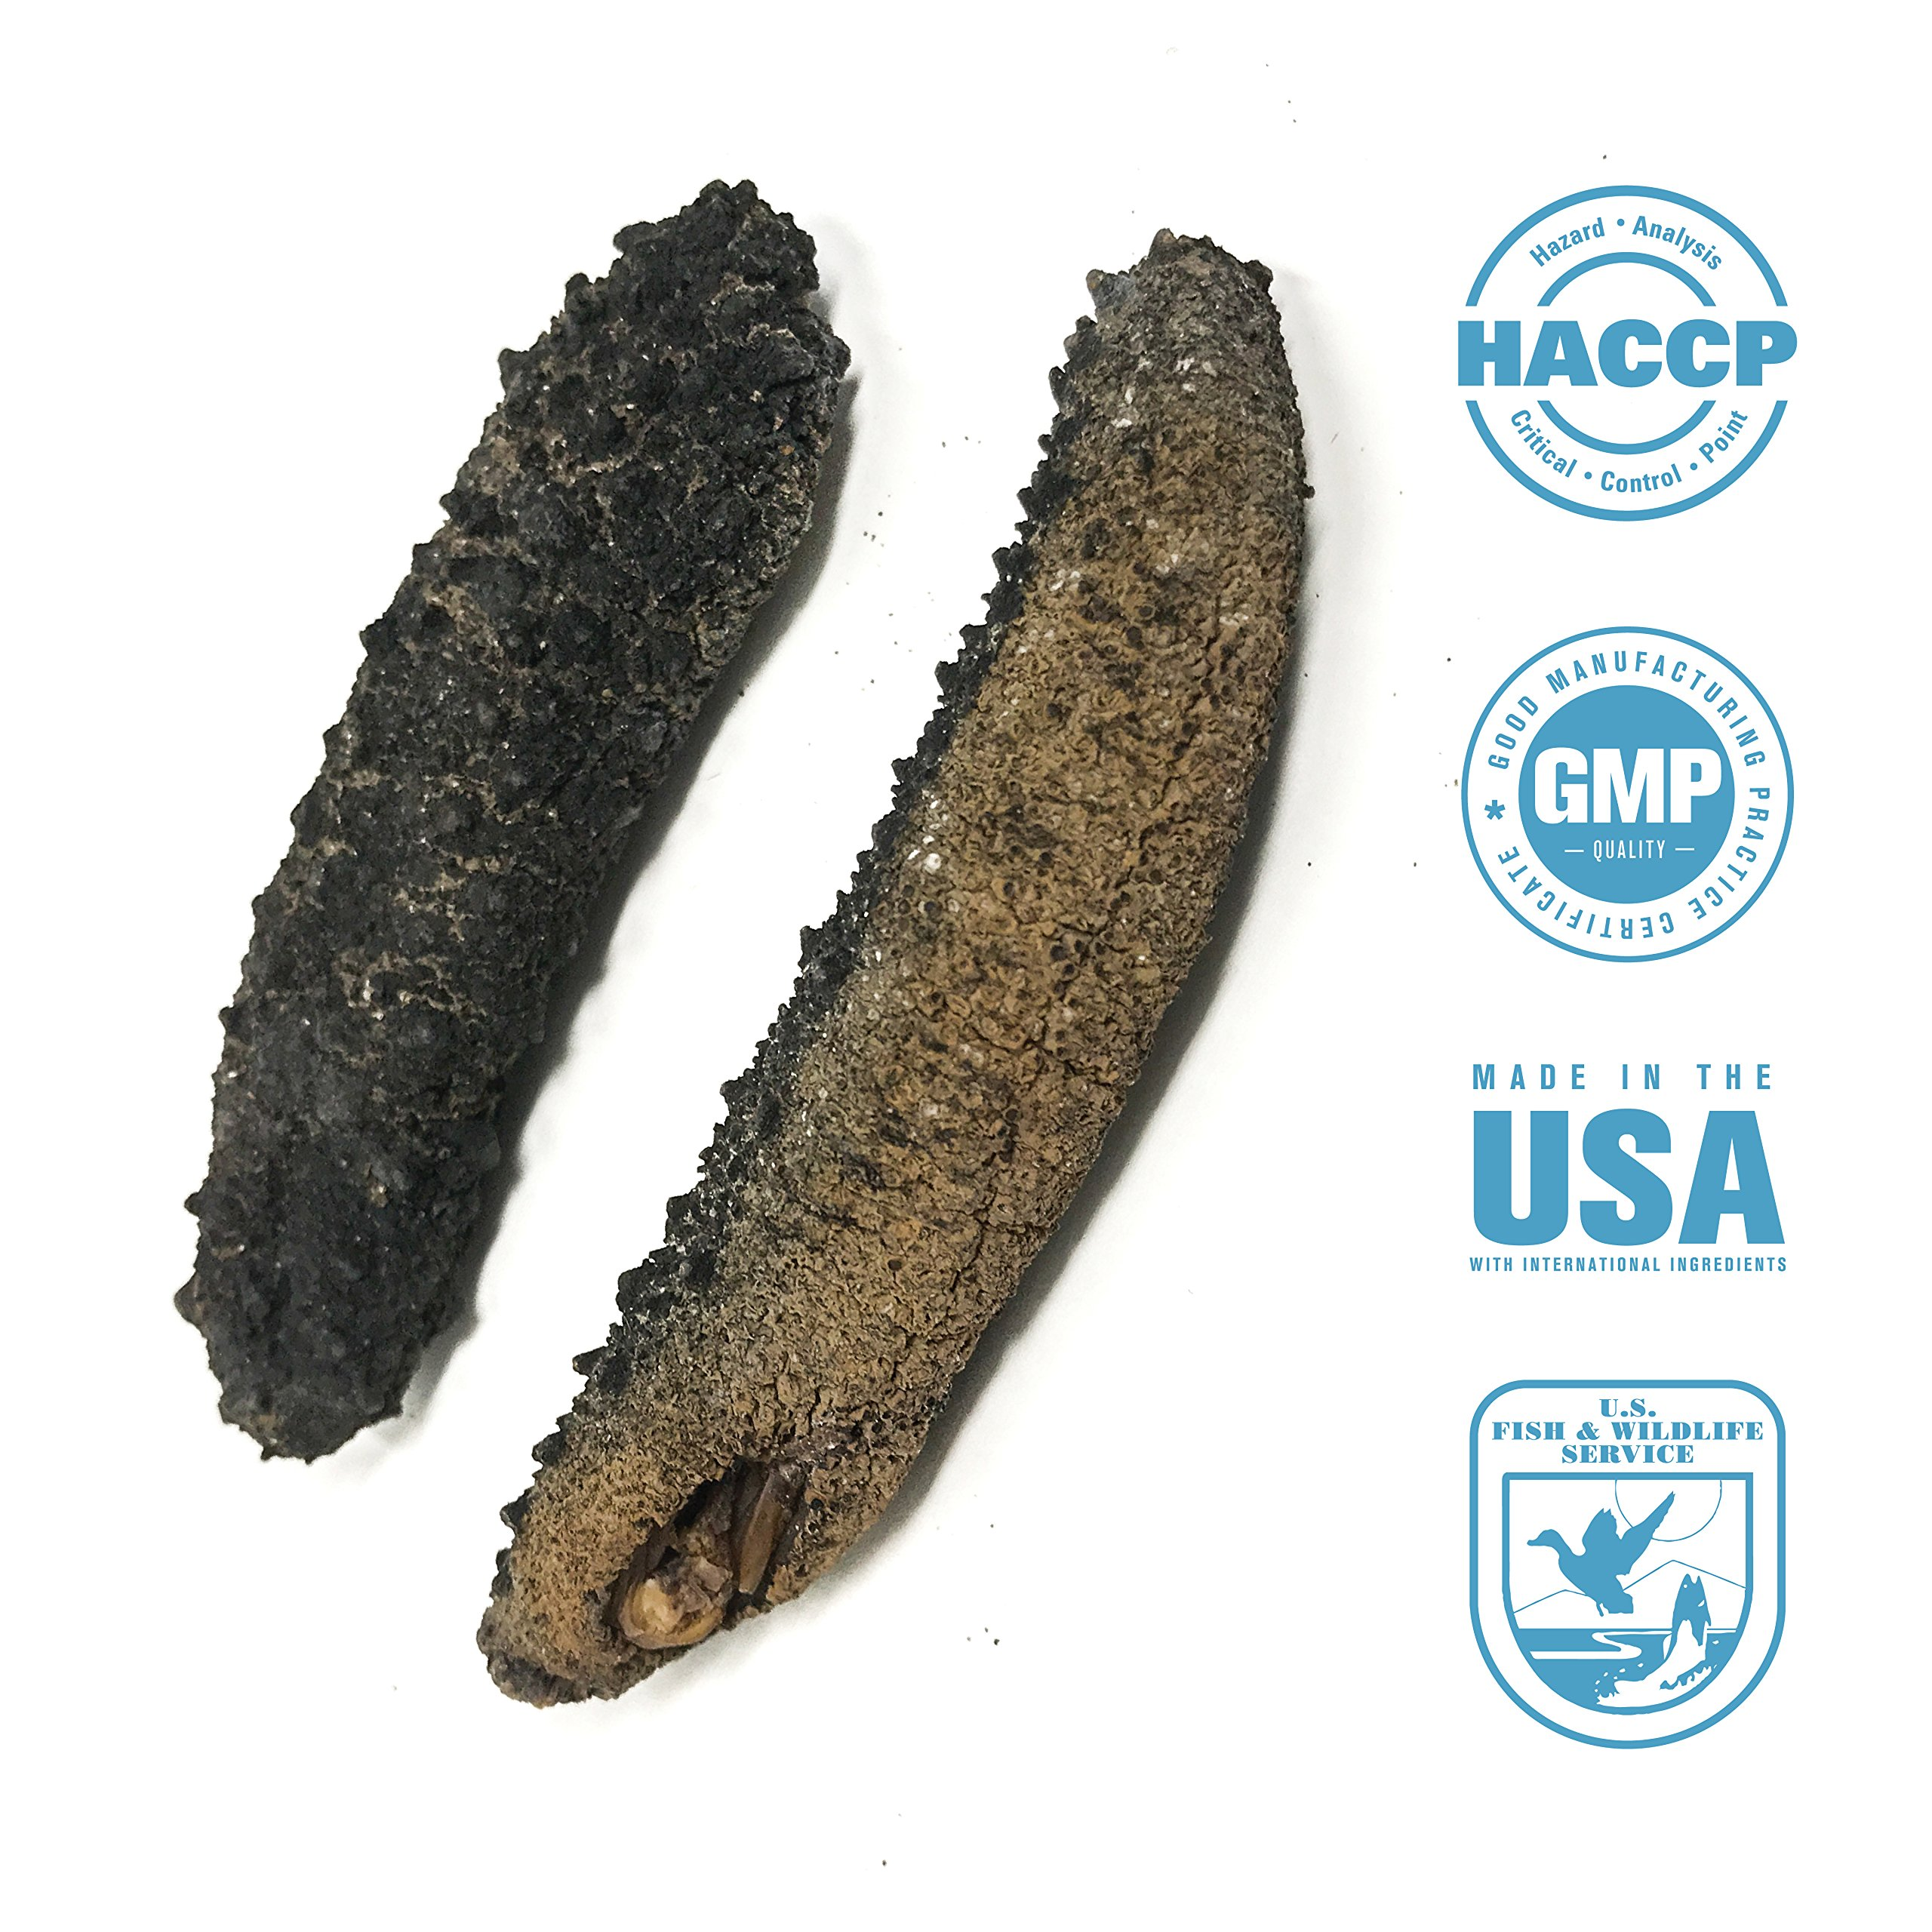 SEABENEFIT Royal Black - Wild Caught Sea Cucumber Dried All Natural Nutritious - 8 oz.